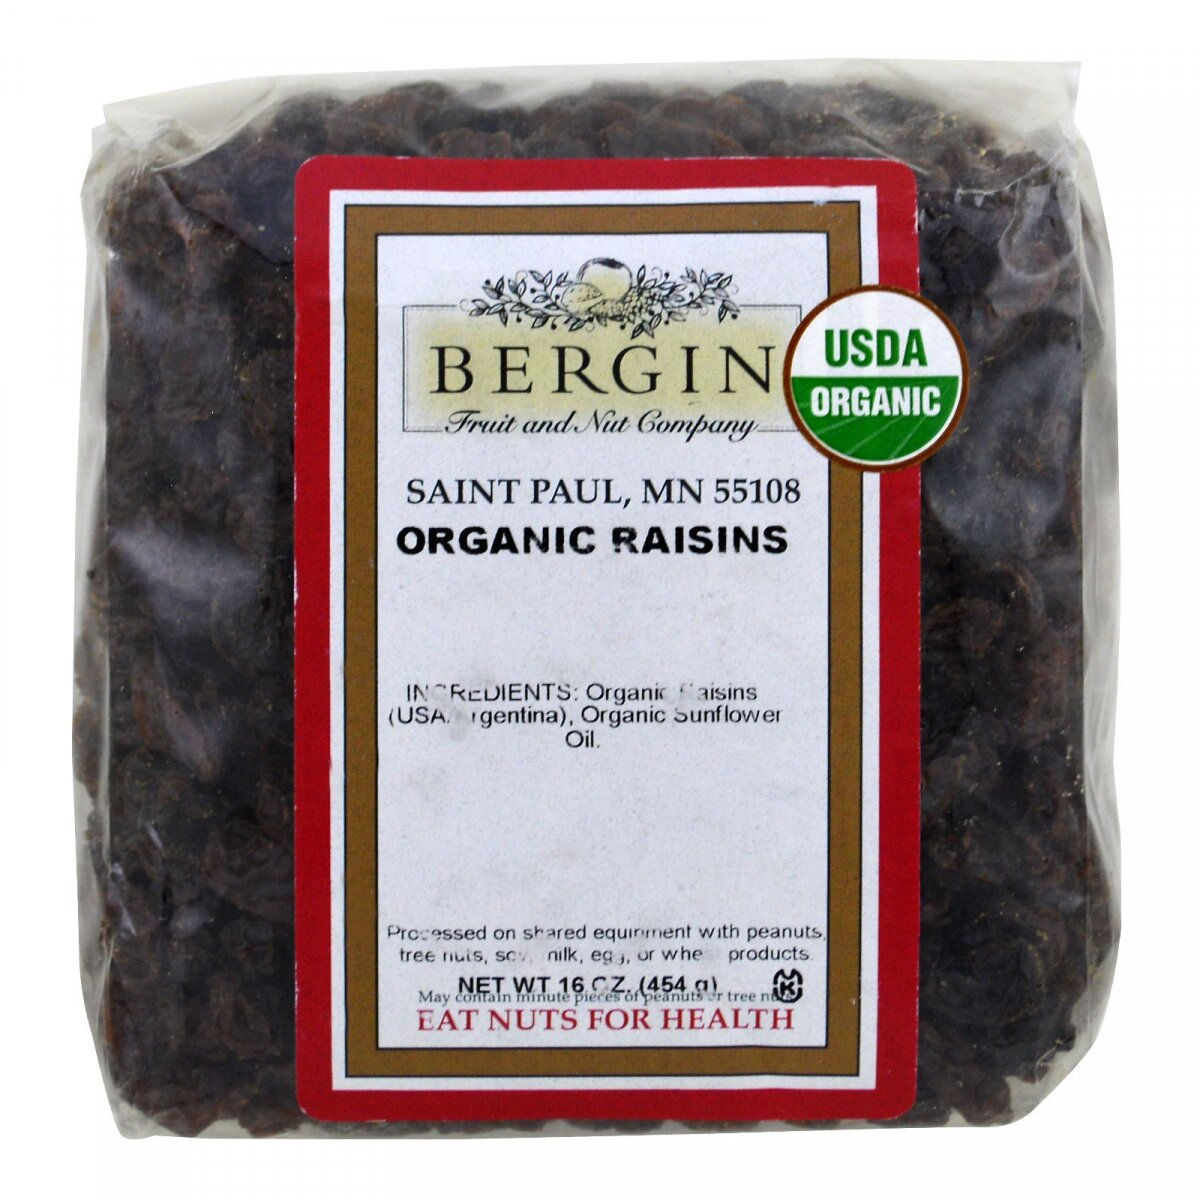 Органический изюм, Organic Raisins, Bergin Fruit and Nut Company, 454 г